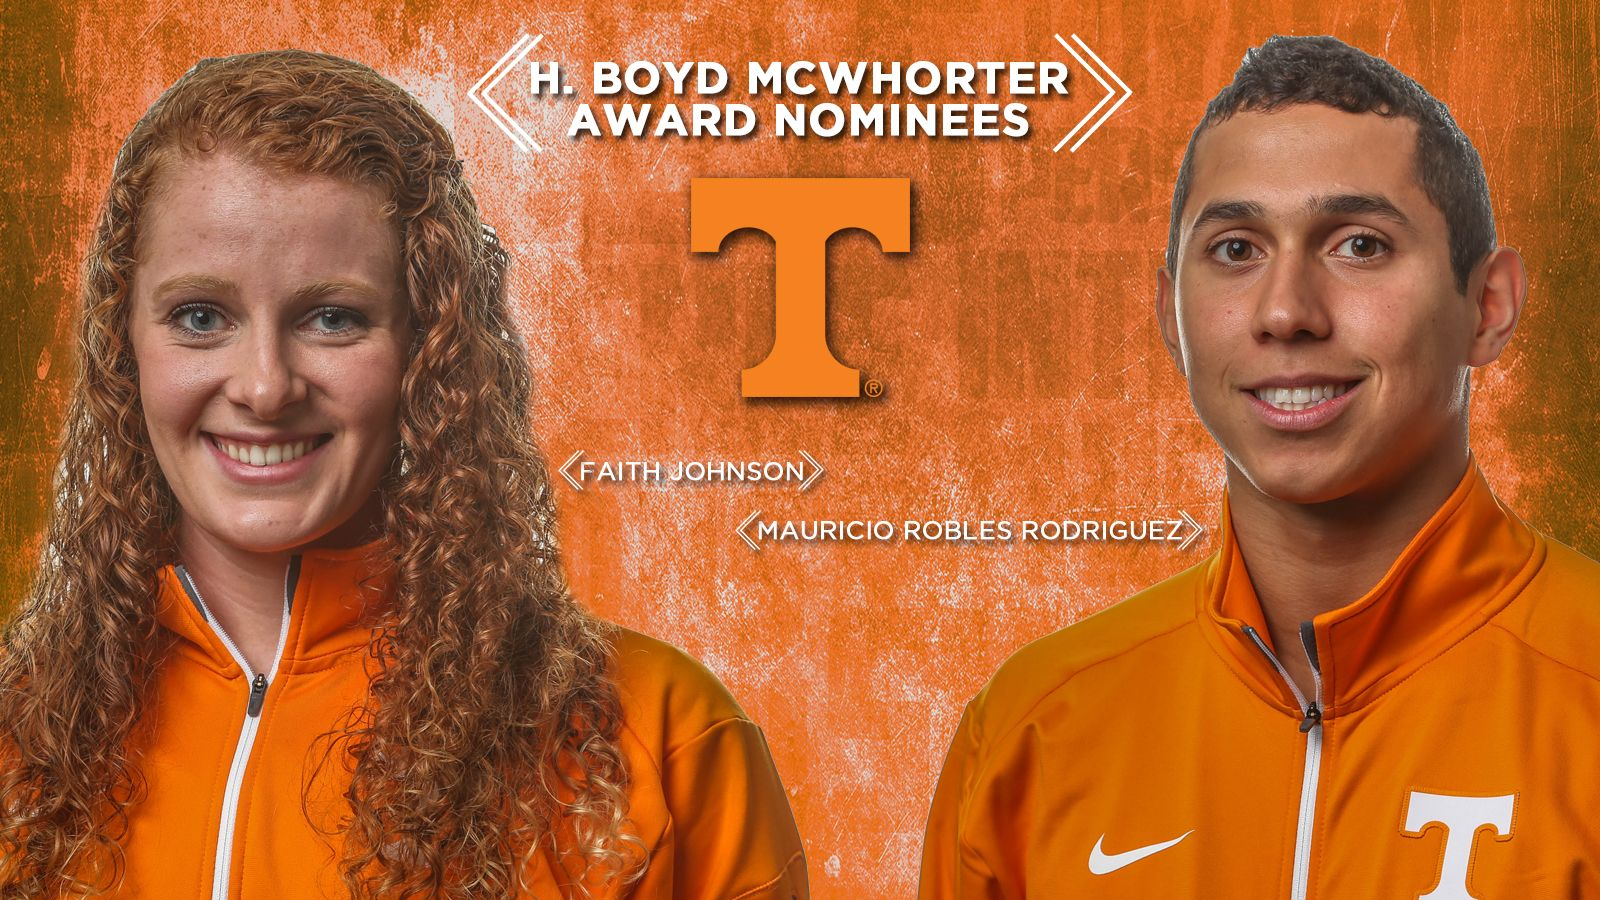 Robles Rodriguez Johnson Nominated For Mcwhorter Award